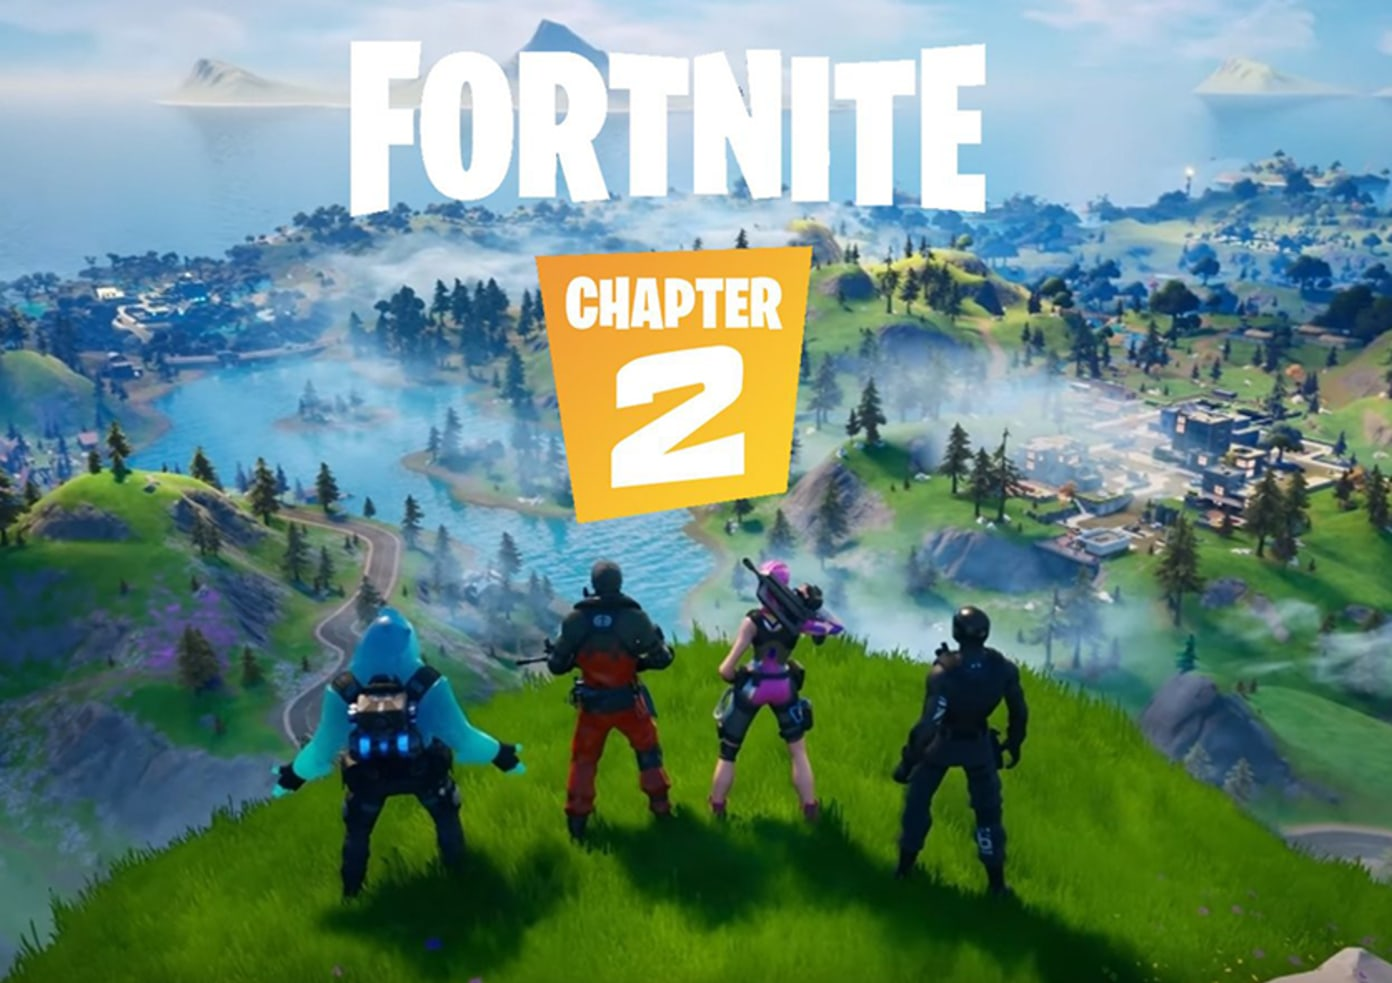 Fortnite Chapter 2 is Officially Out